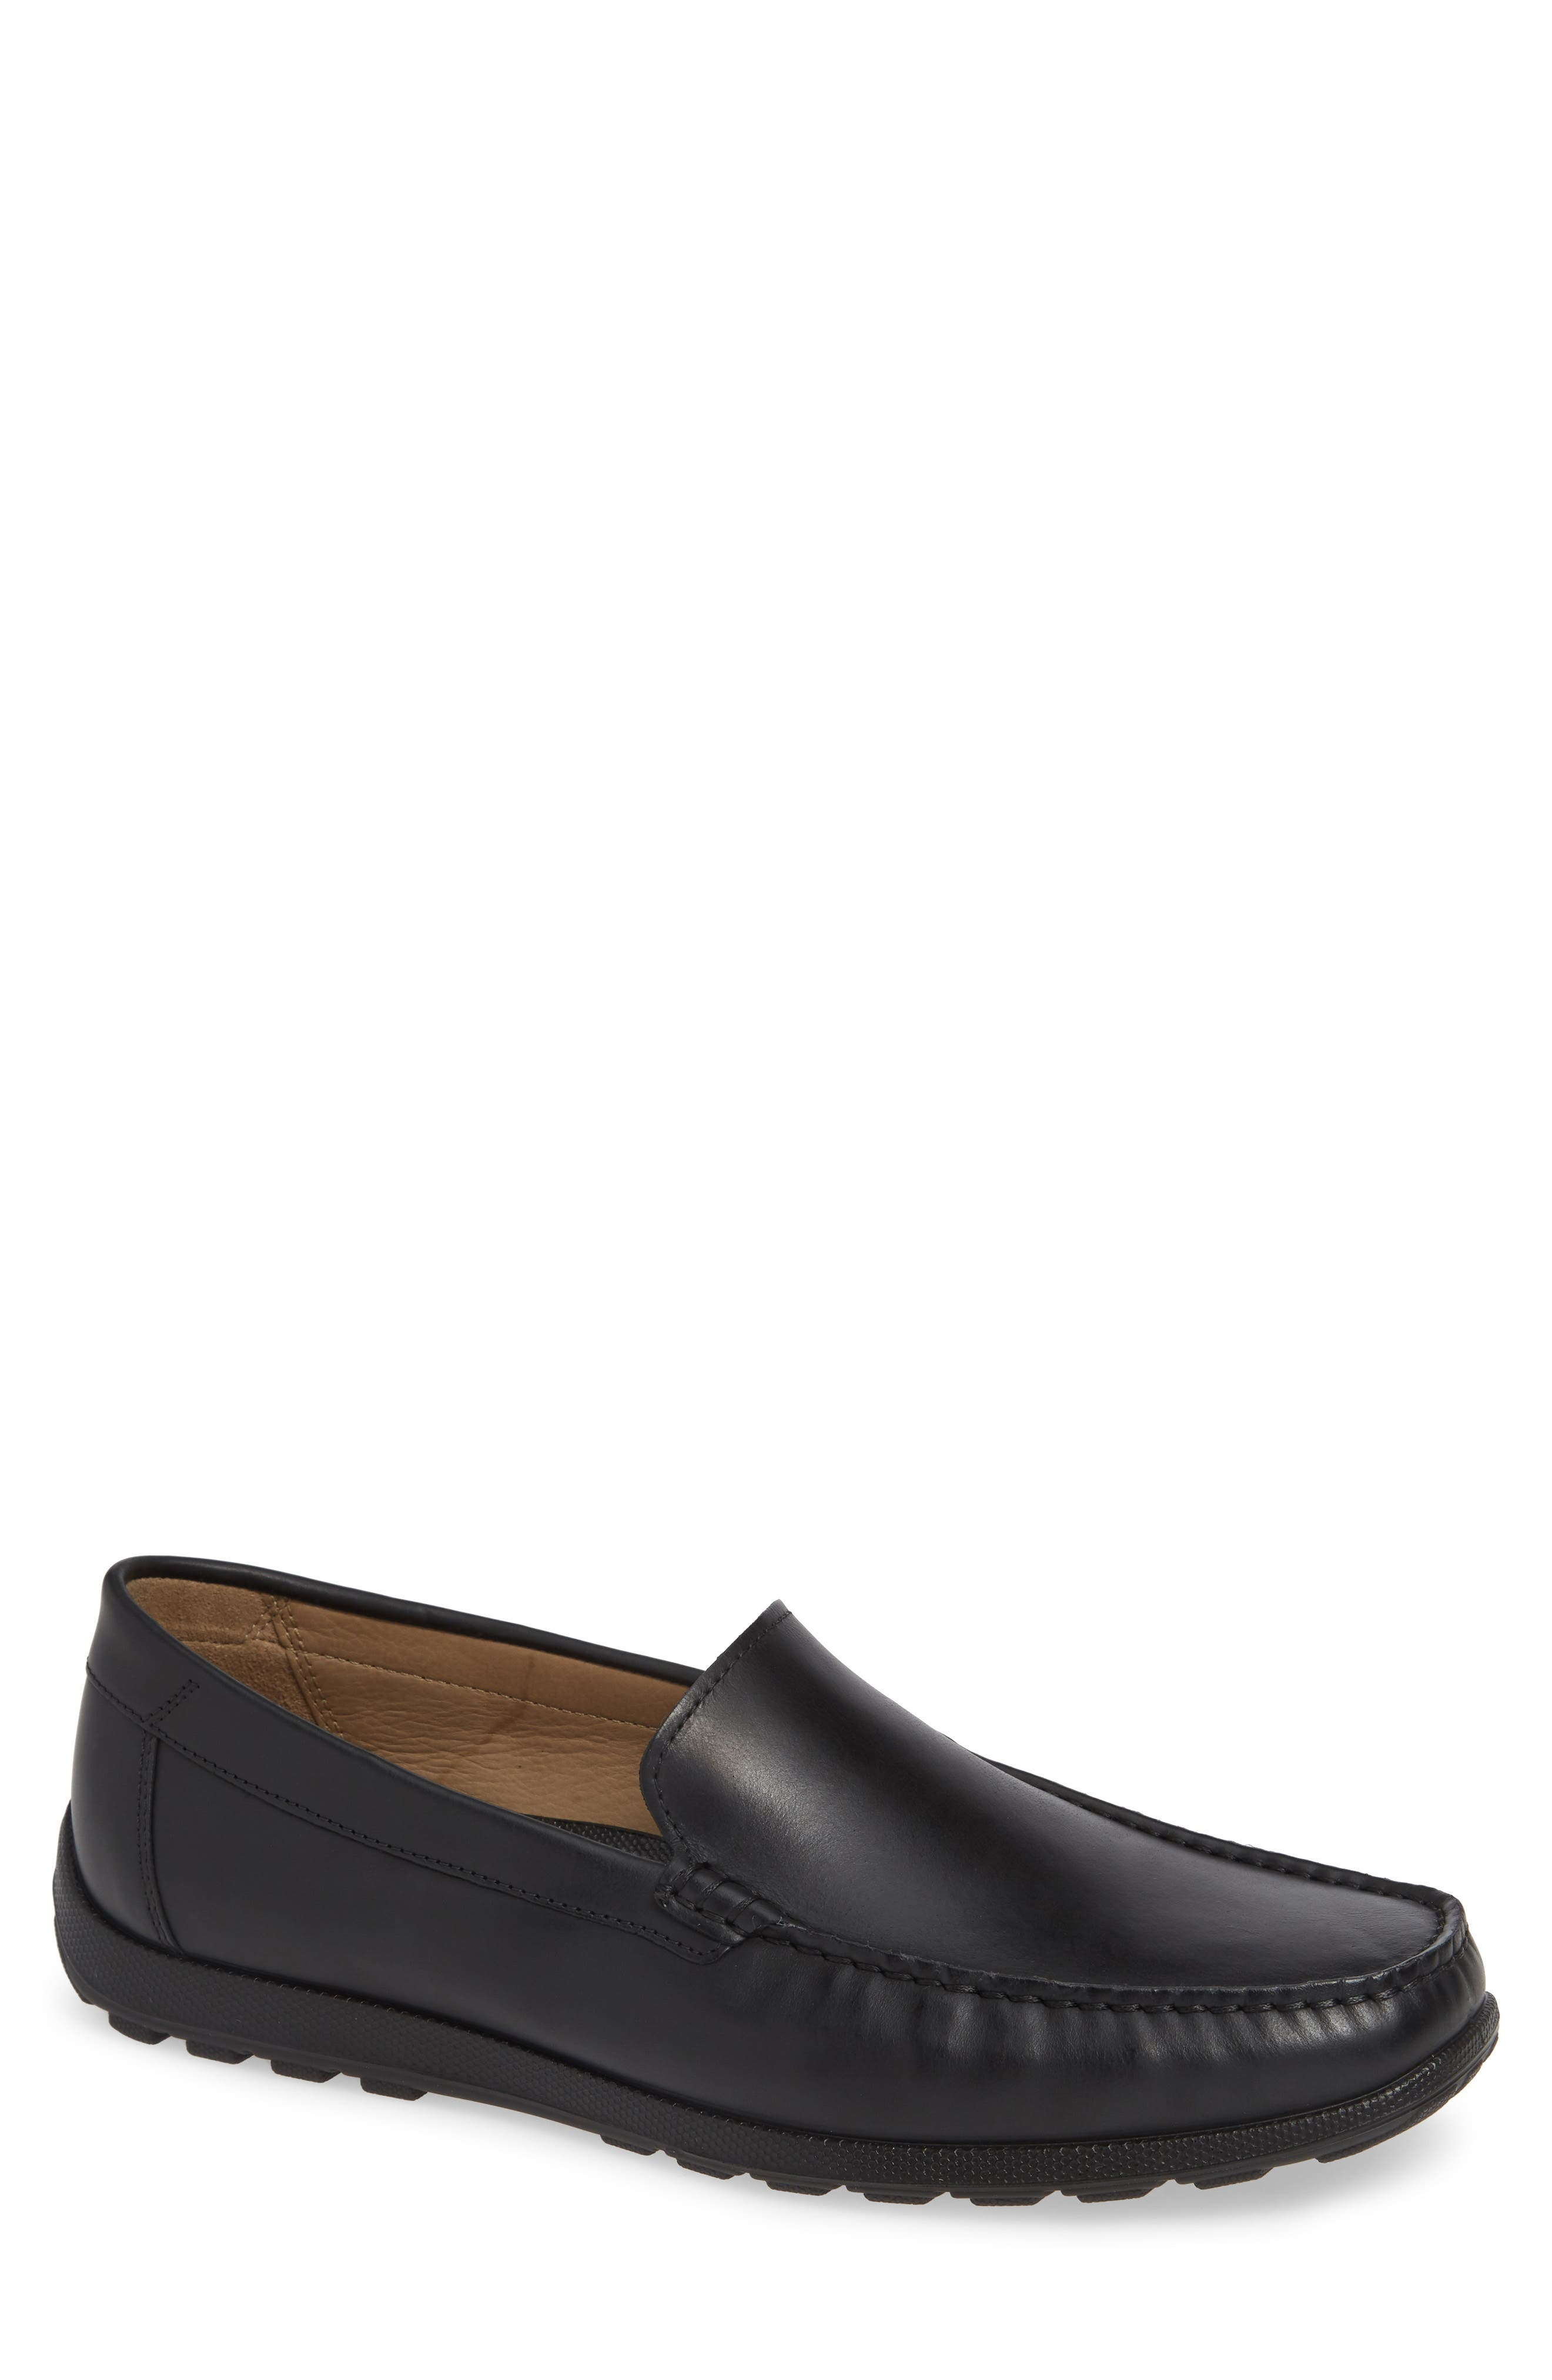 Ecco Dip Moc Toe Driving Loafer,12.5 - Black